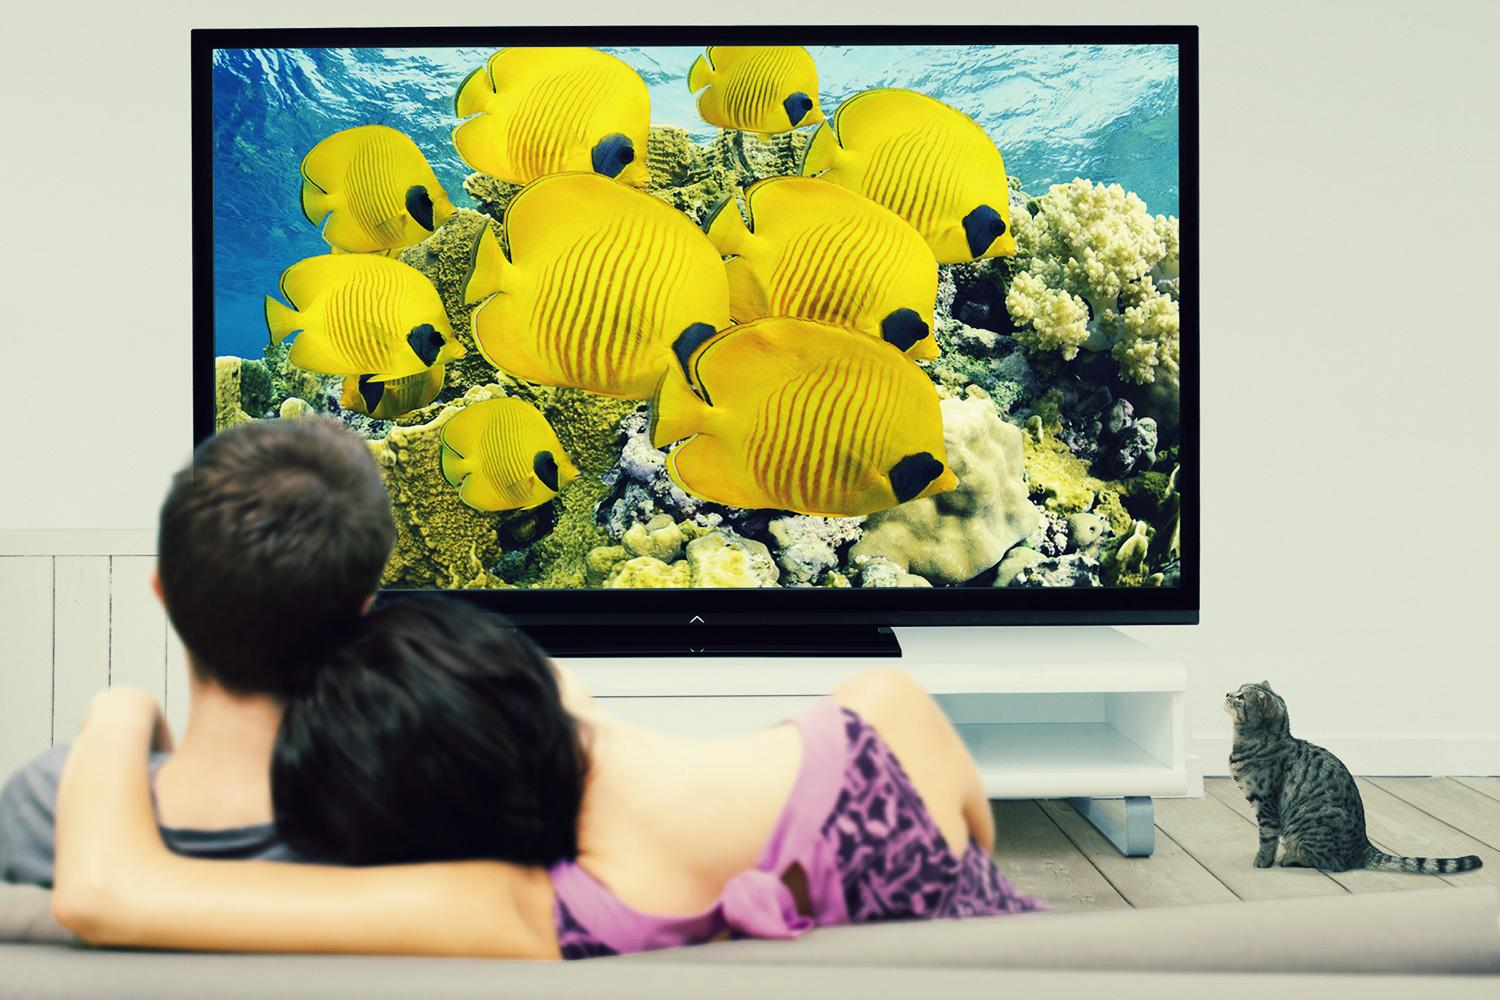 How to choose the right size TV | Digital Trends